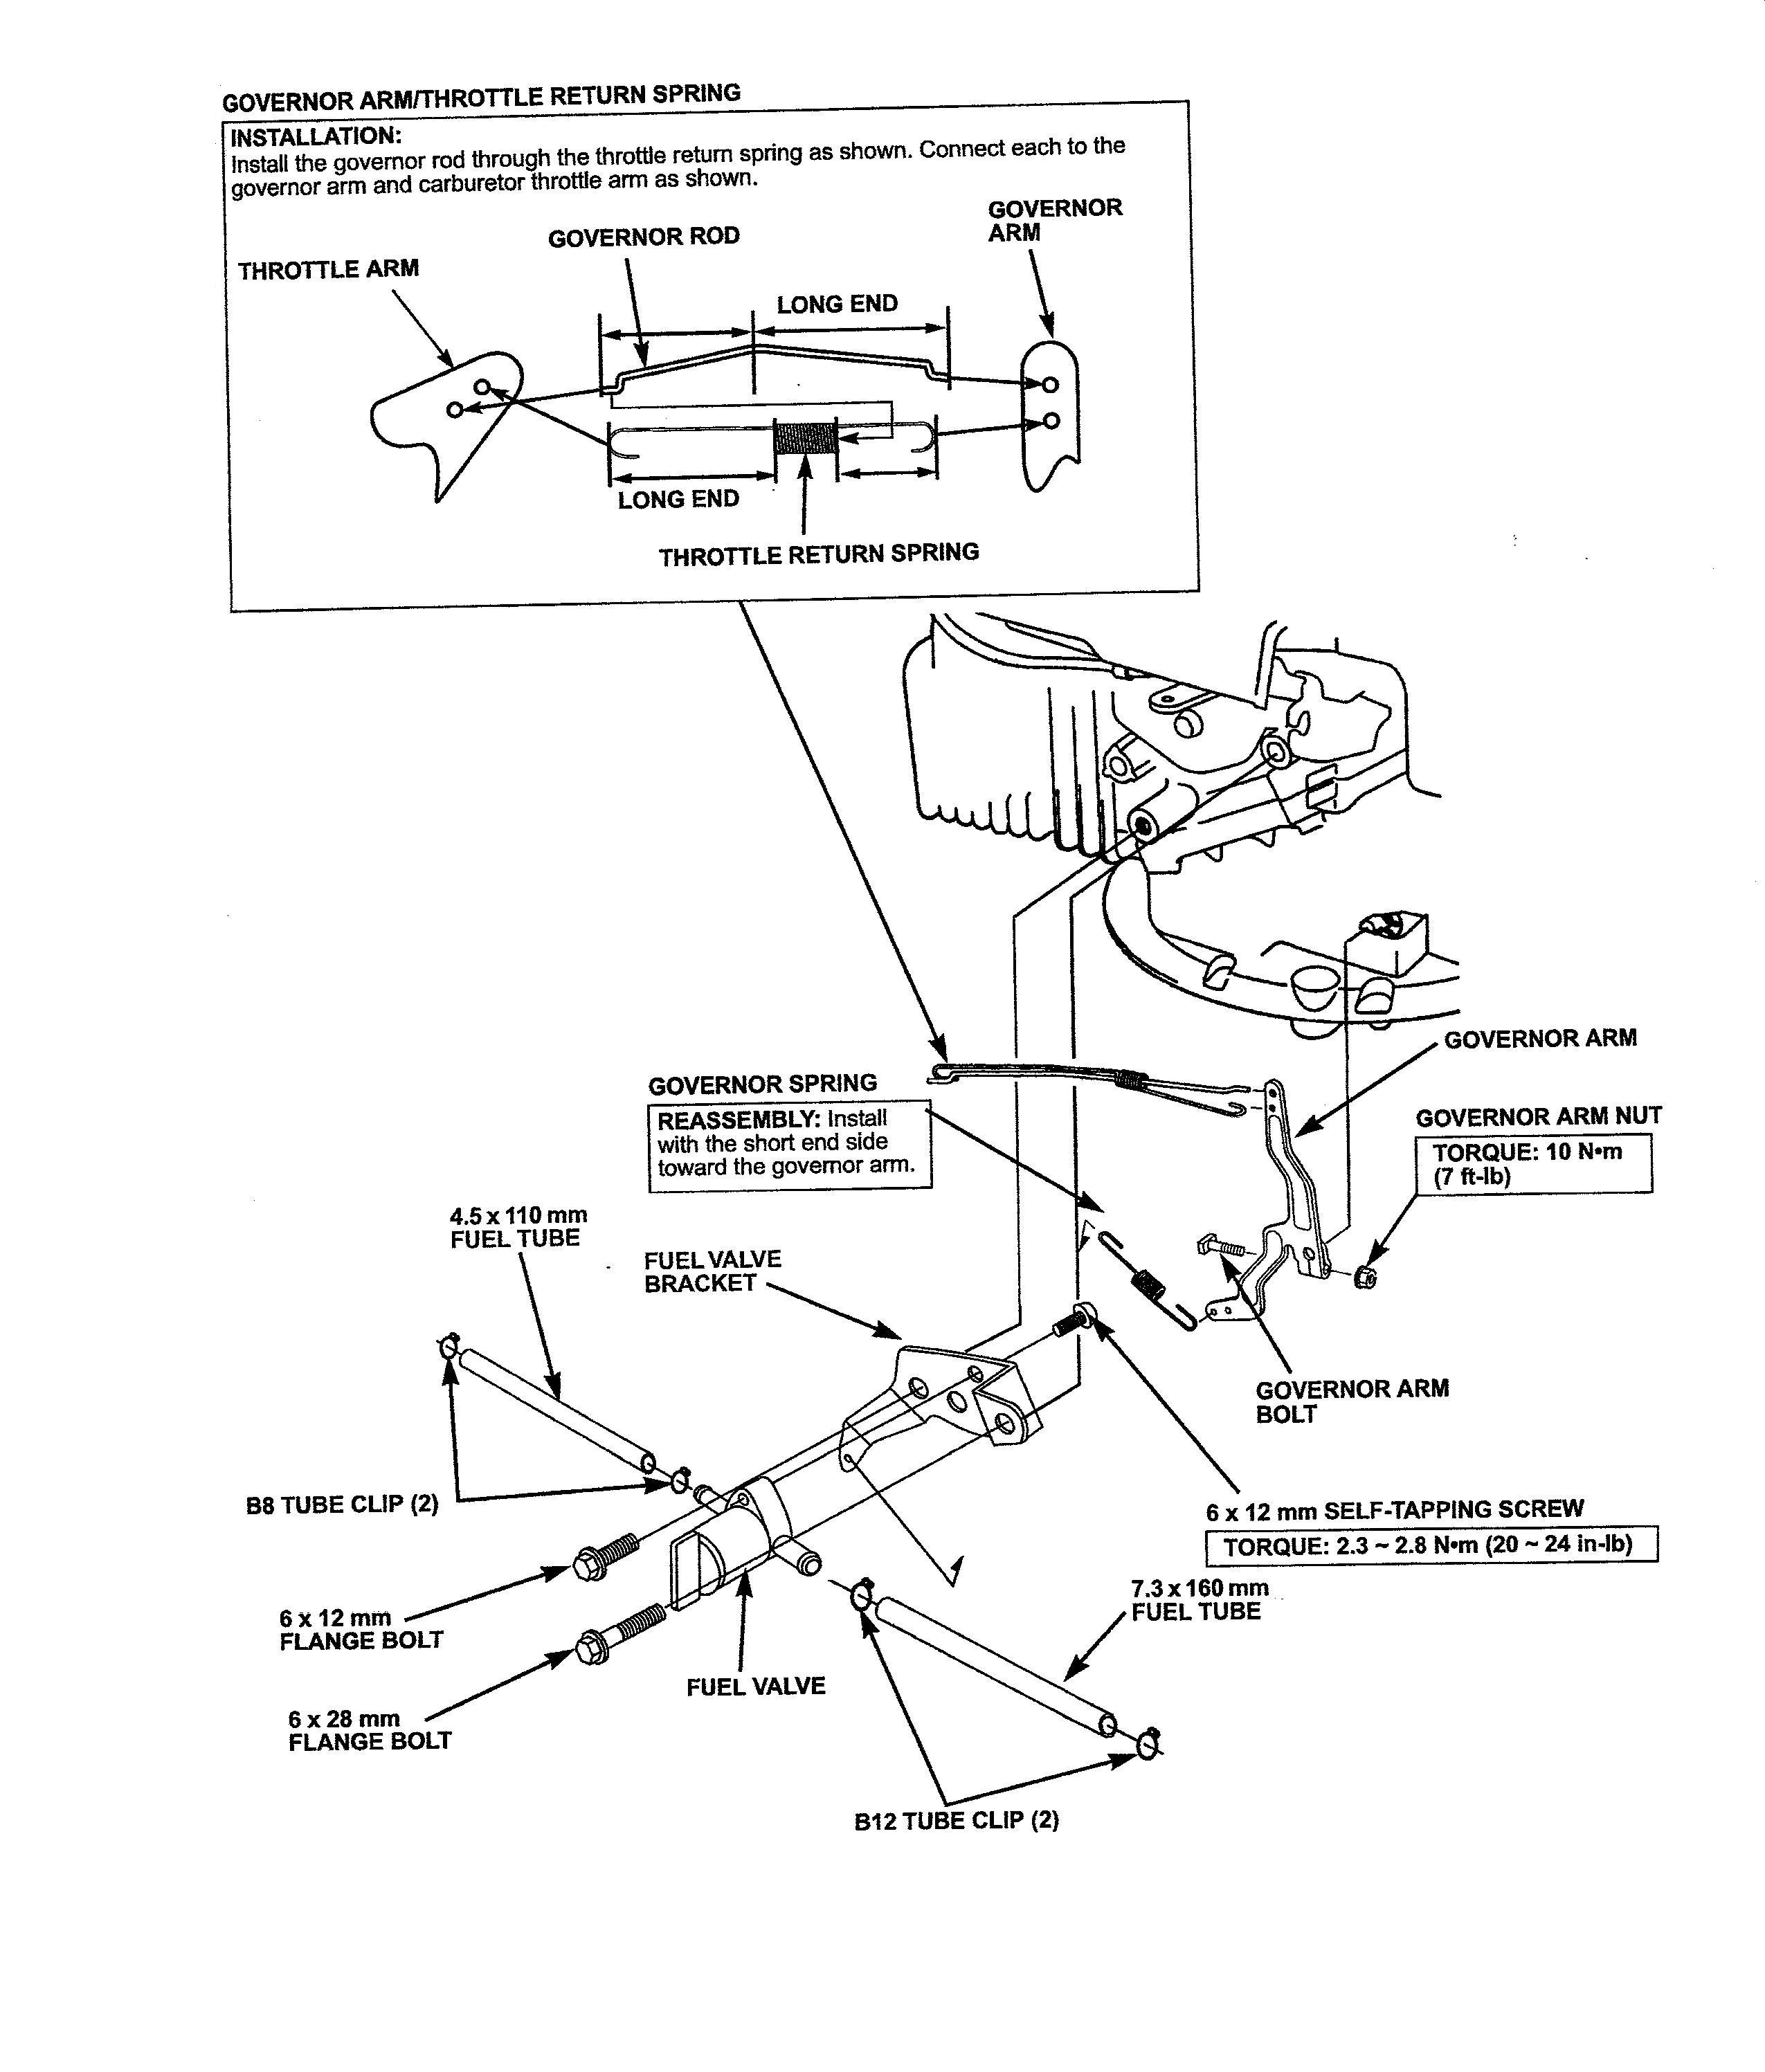 Honda Hrx217 Parts Diagram I Have A Hrx217 and I Was Wondering if You Can Answer A Question Of Honda Hrx217 Parts Diagram